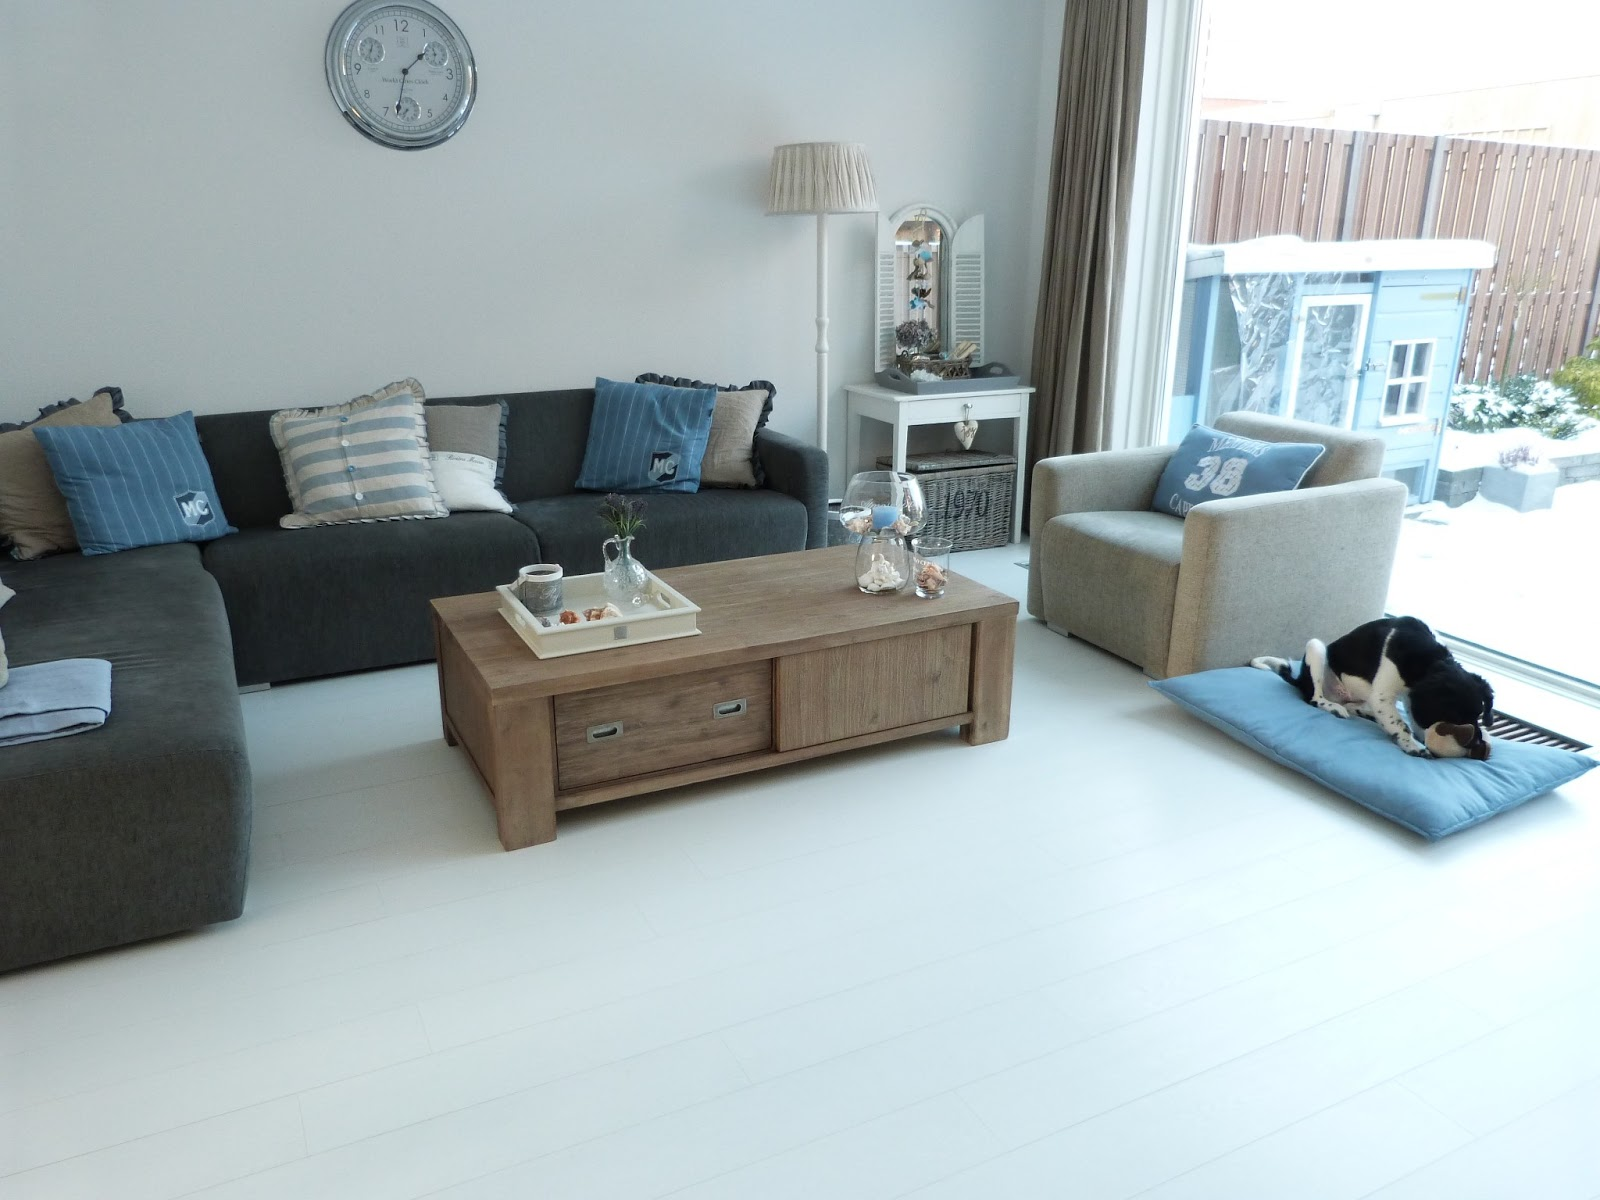 Blauw Grijze Hoekbank.Kussens Op Grijze Bank Charly 39s Style Of Life Finally A New Couch